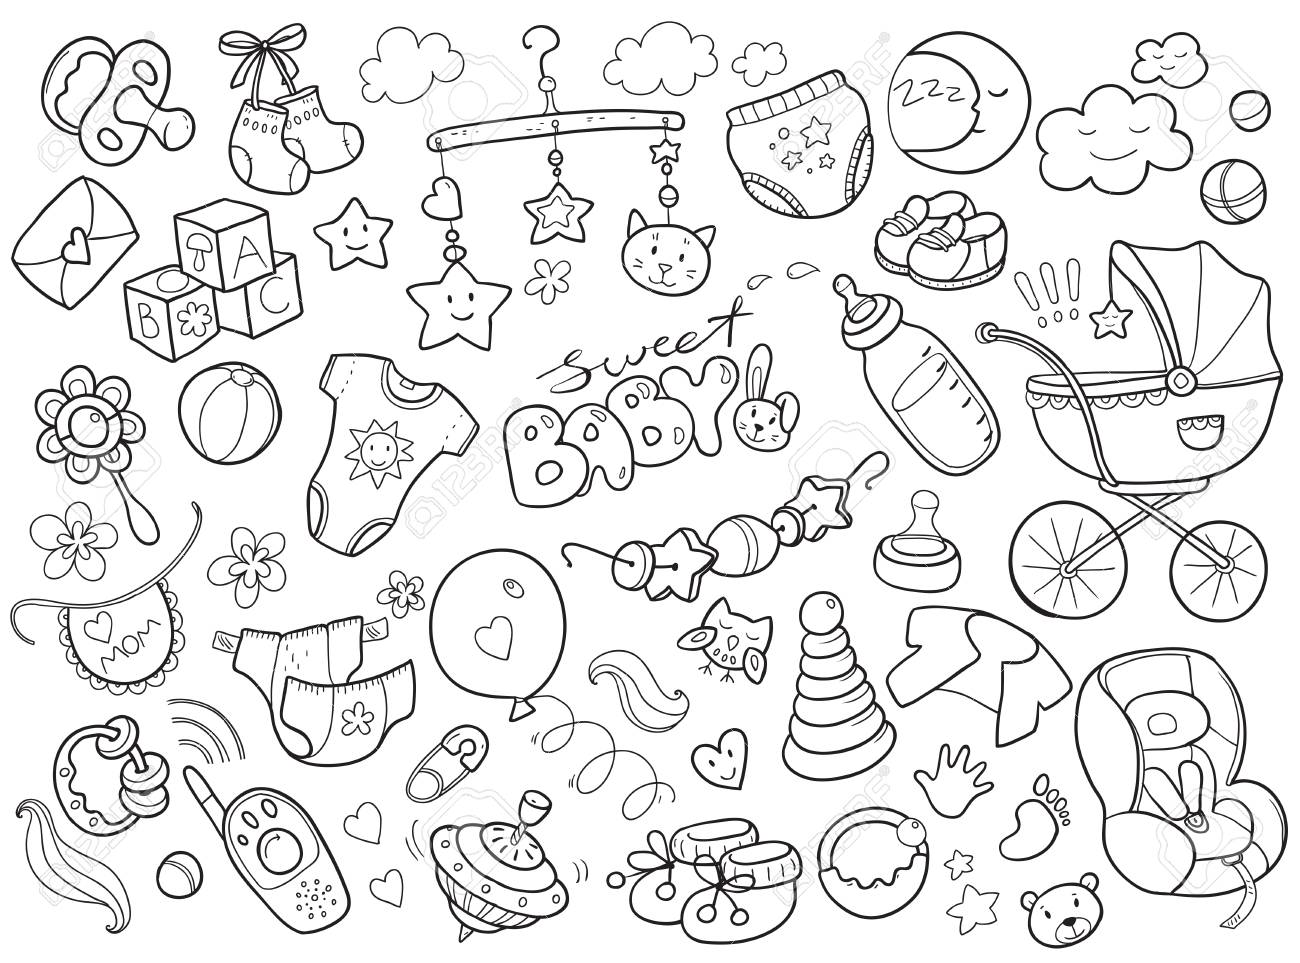 228c7d6de Newborn infant themed cute doodle set. Baby care, feeding, clothing, toys,